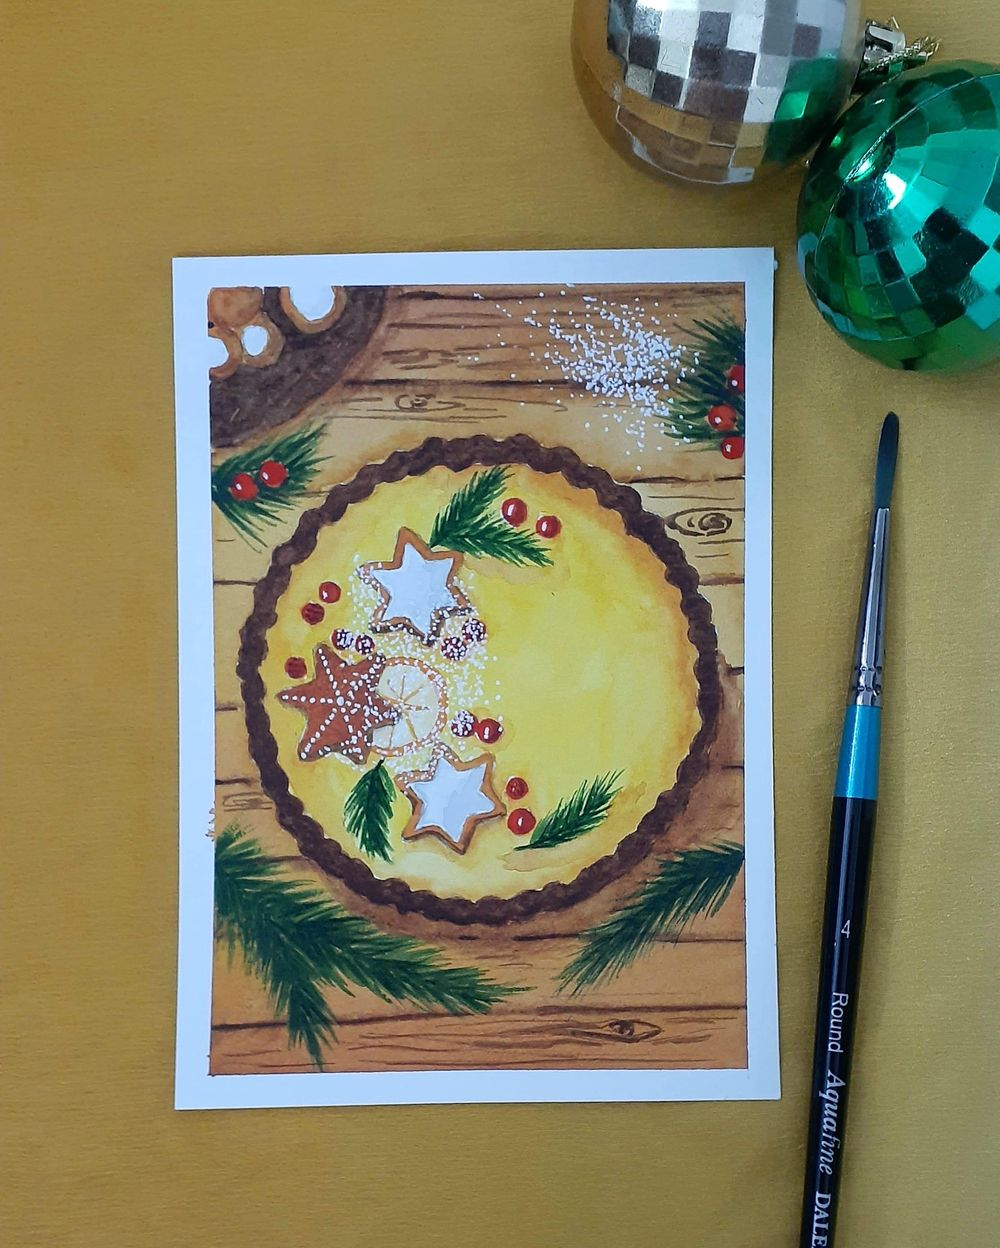 Countdown to Christmas with 24 Beautiful Paintings - image 15 - student project